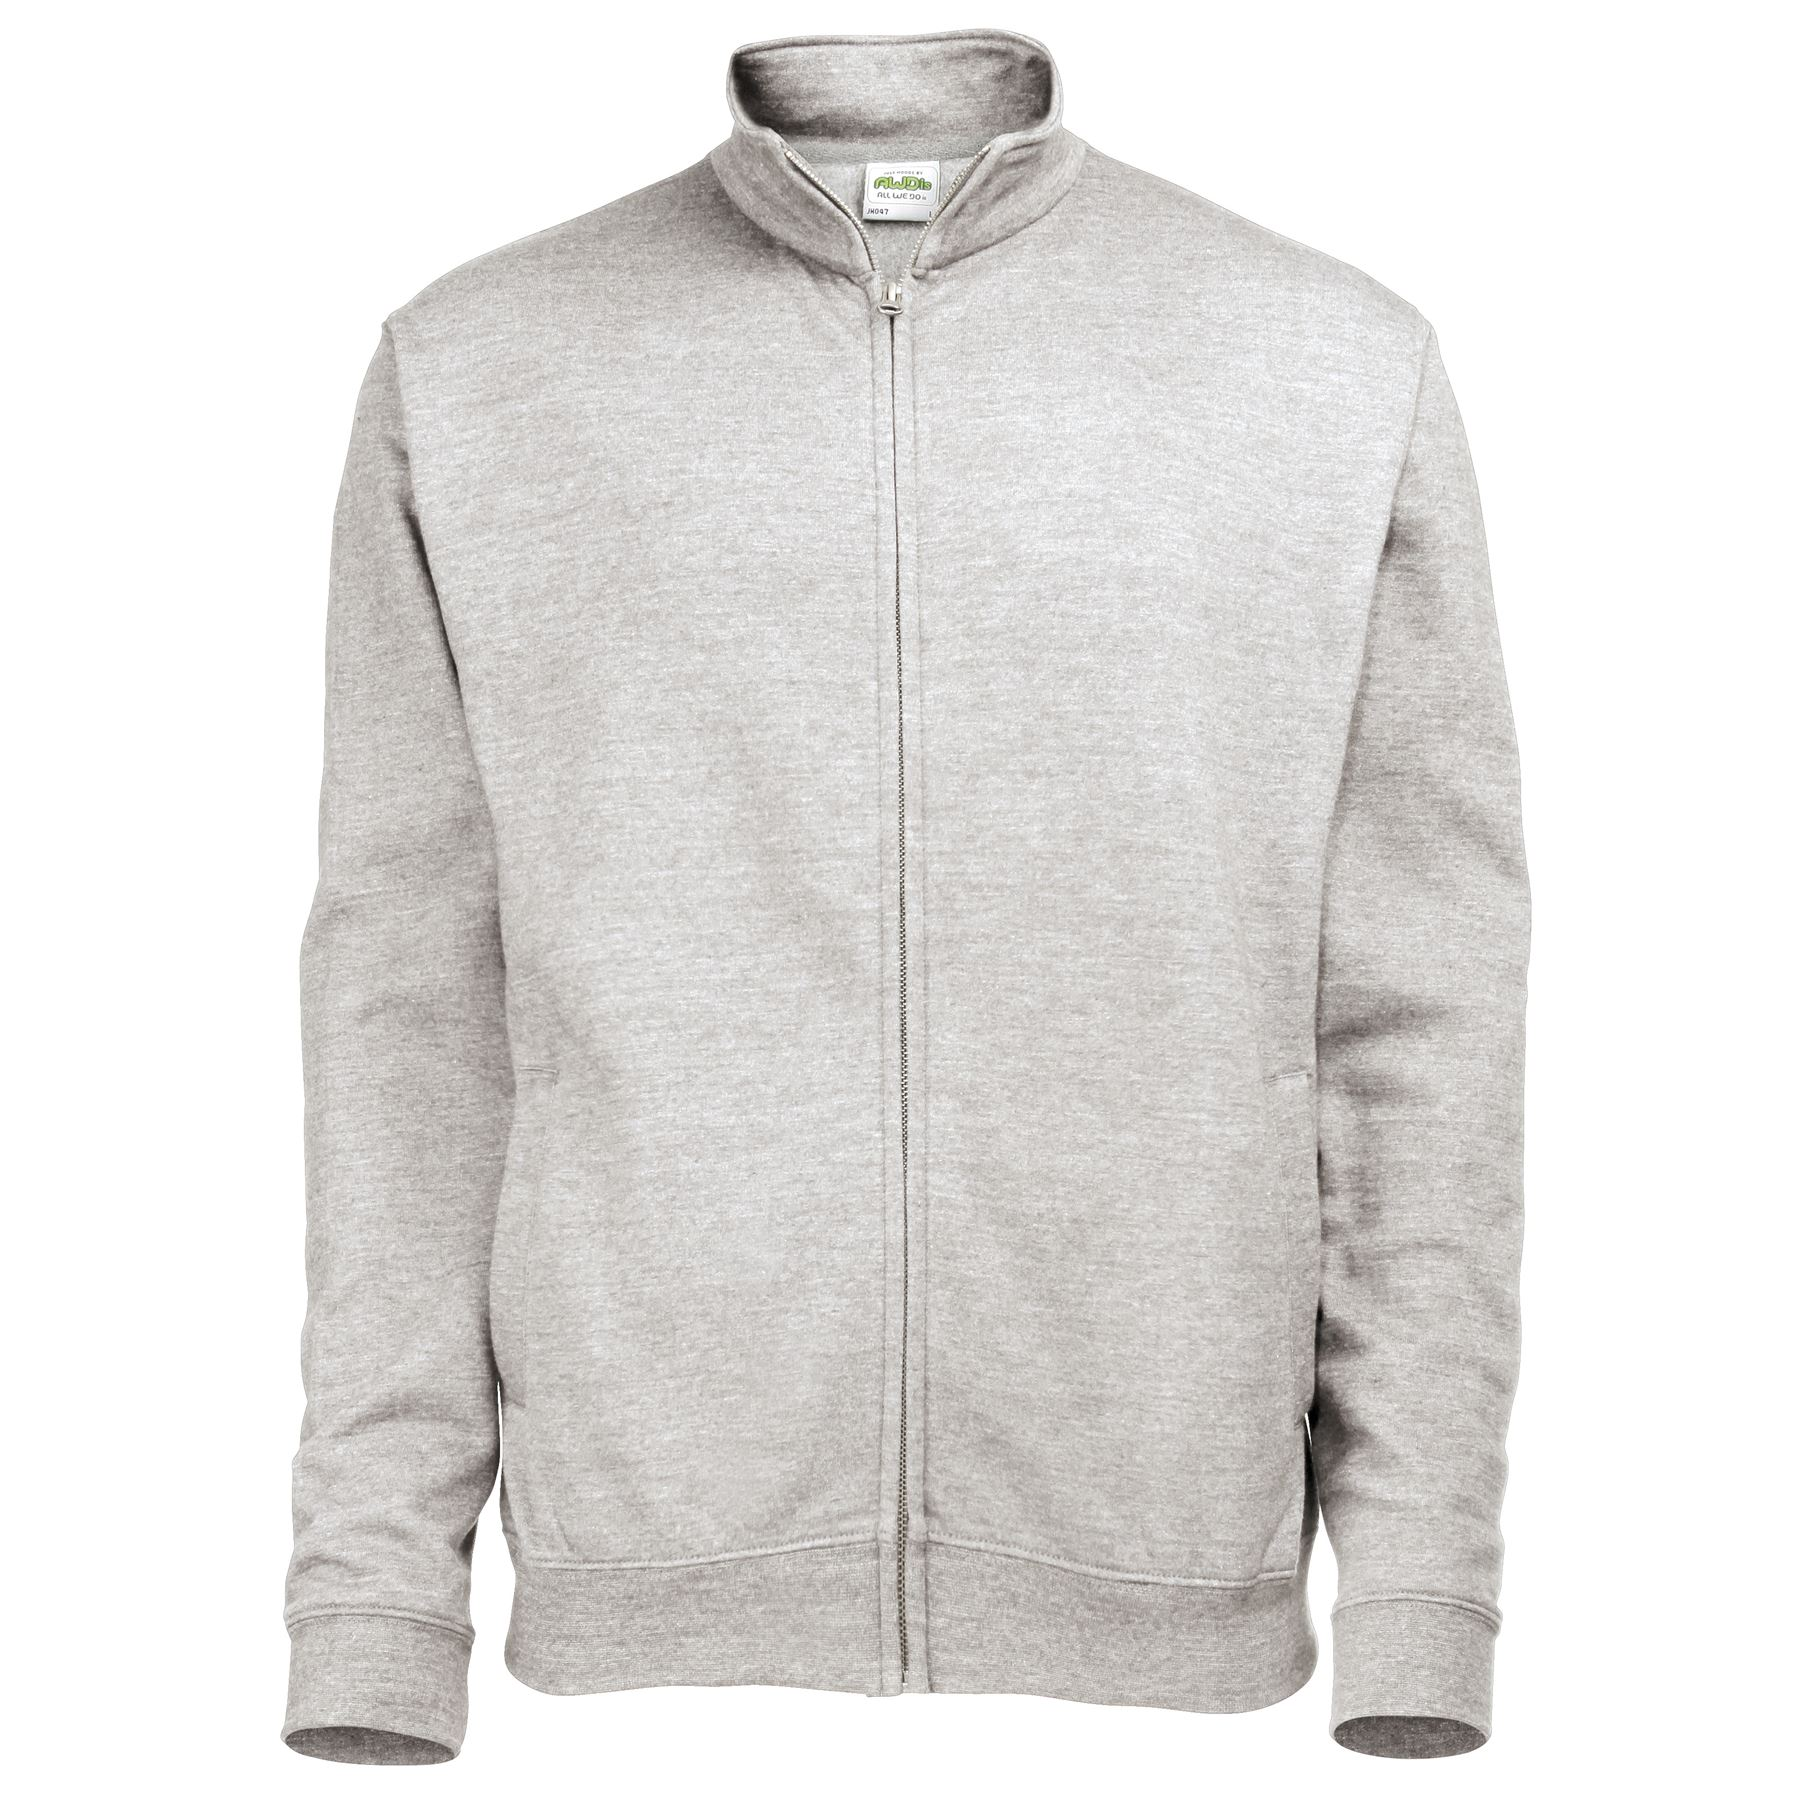 Sports Hoodies and Fleece. Complete your active wear rotation with sports hoodies and fleece. From full-zip to pullover styles, find the perfect addition to your comfortable wardrobe. Whether you're looking for patterned or solid colors, our selection has something to suit your taste.